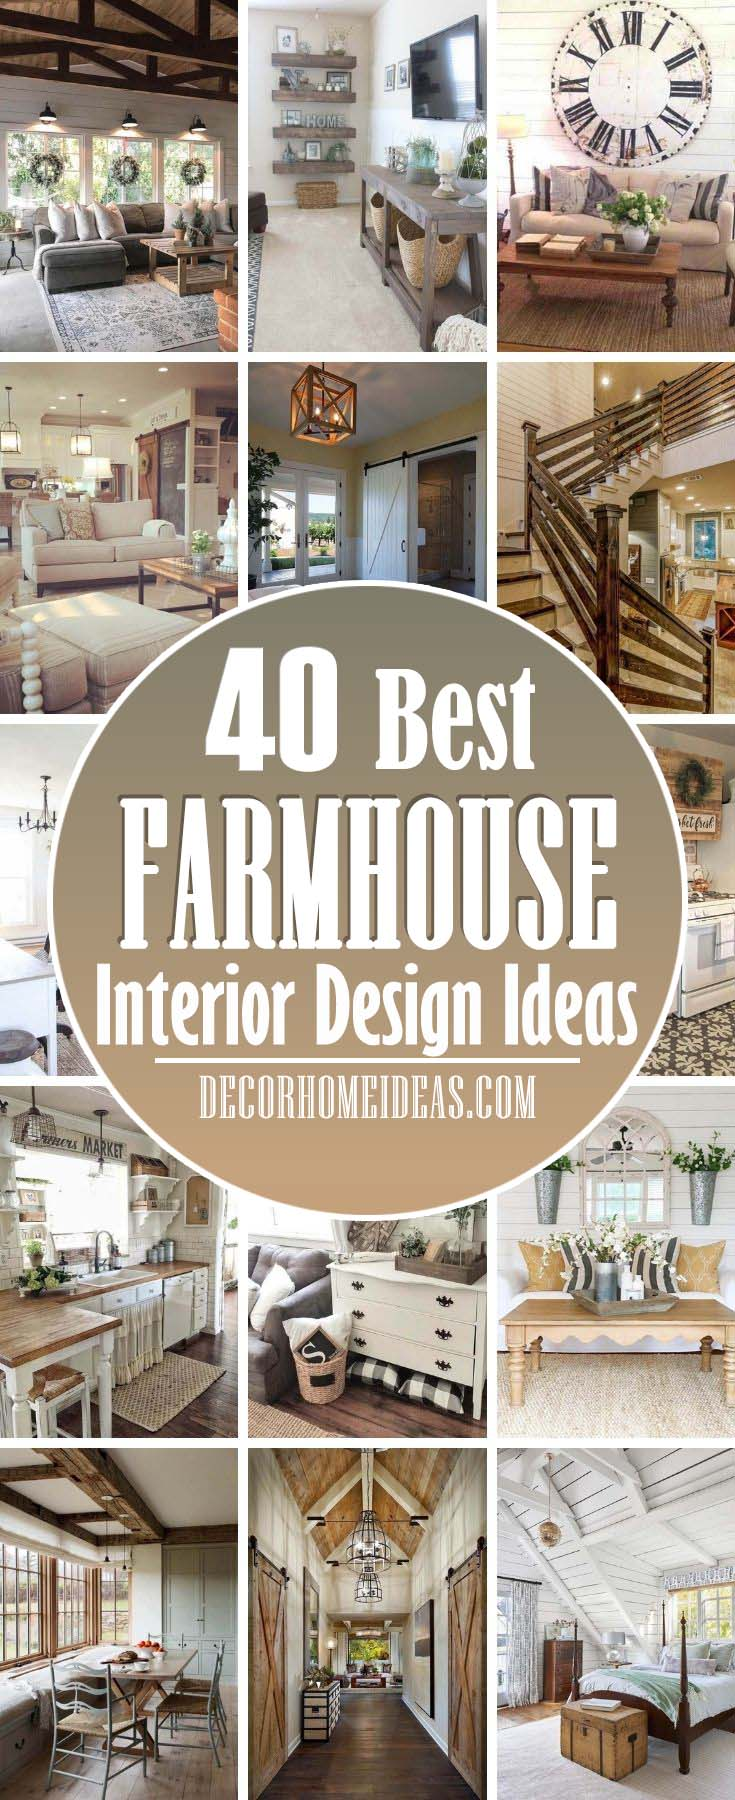 Best Farmhouse Interior Design Ideas. We never tire of beautiful farmhouse decor. Whether you're renovating your country bedroom or decorating your farmhouse kitchen, take cues from these simple and rustic rooms that will help you achieve a cozy home. #decorhomeideas